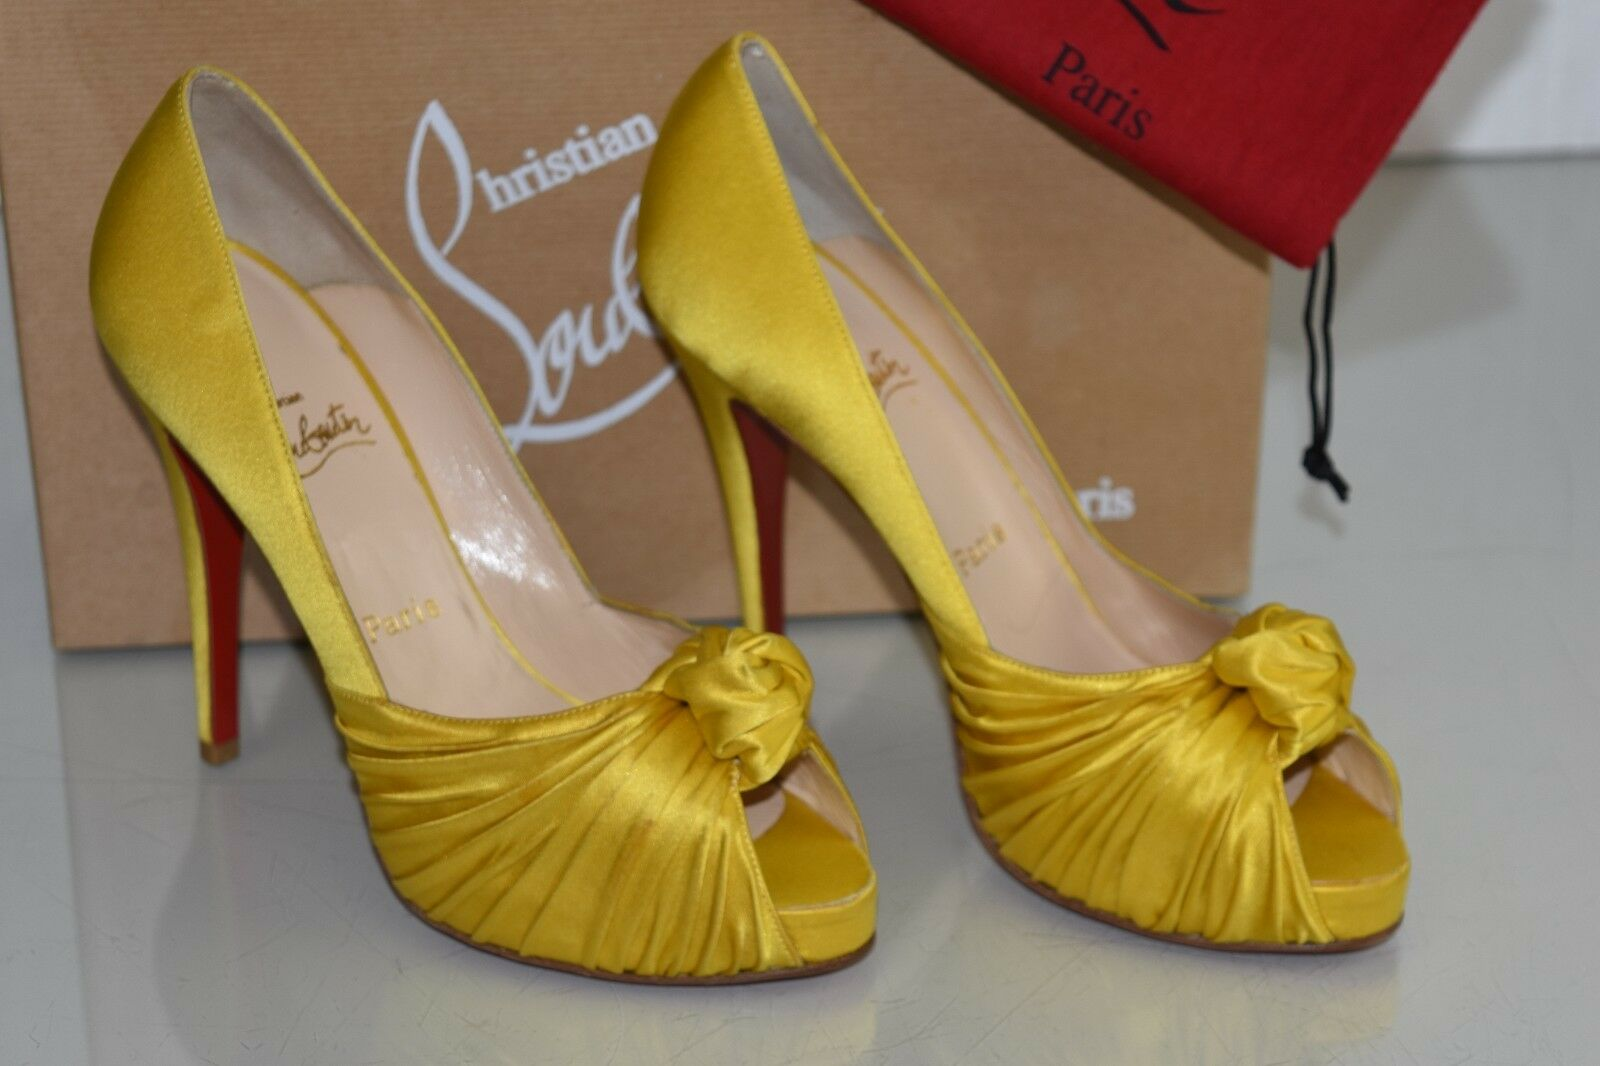 865 New CHRISTIAN LOUBOUTIN Lady Gres Satin Yellow Platform Heels SHOES 39